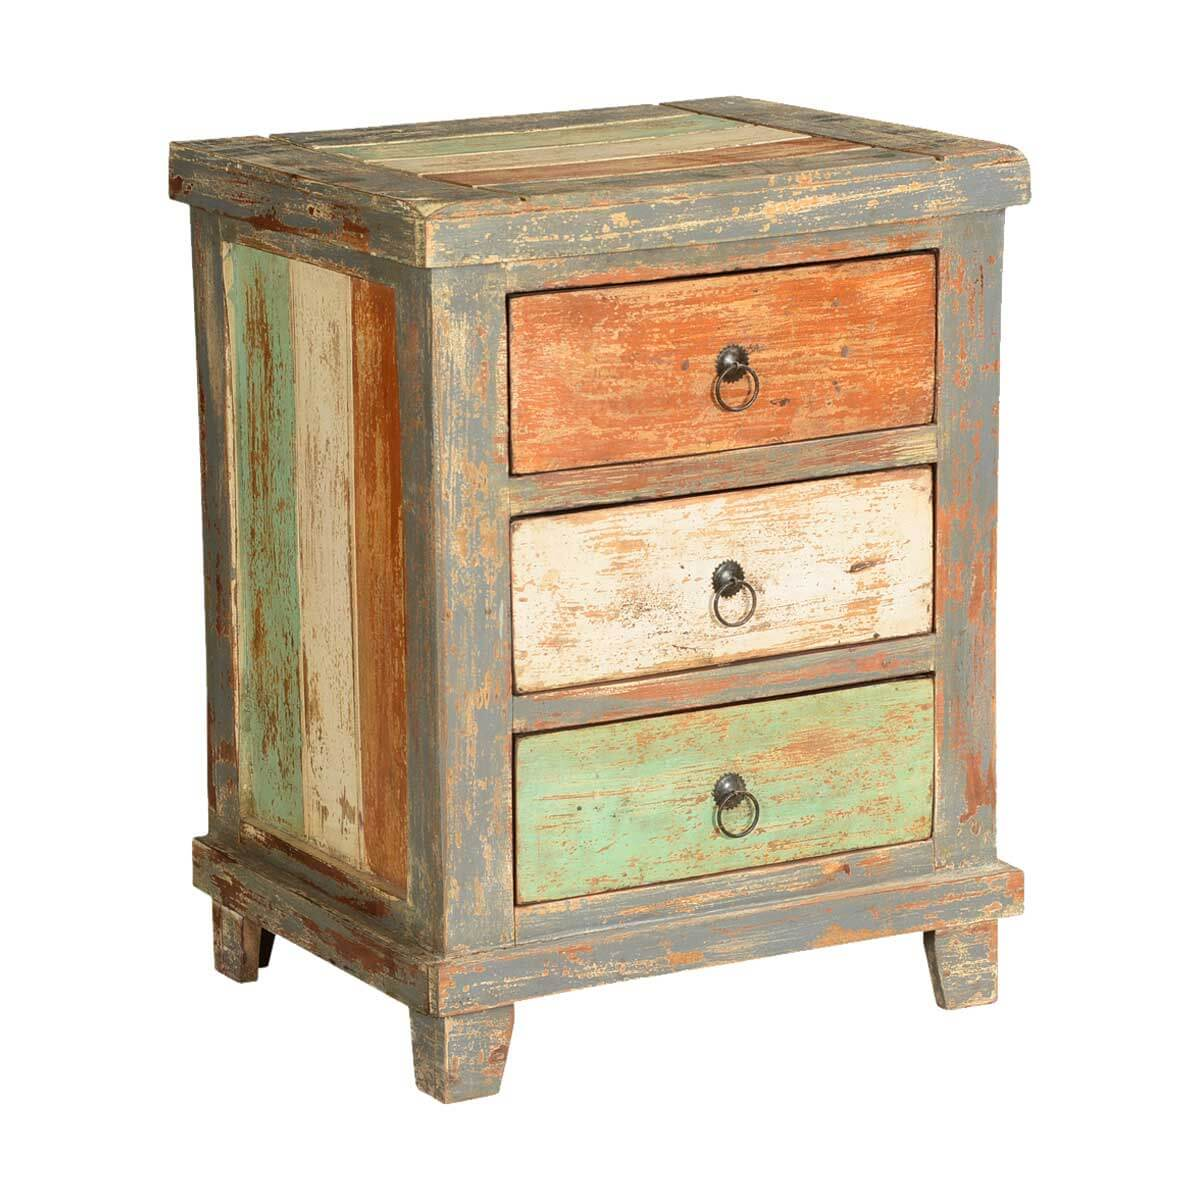 Orange White Green Stripes Mango Wood Rustic Nightstand